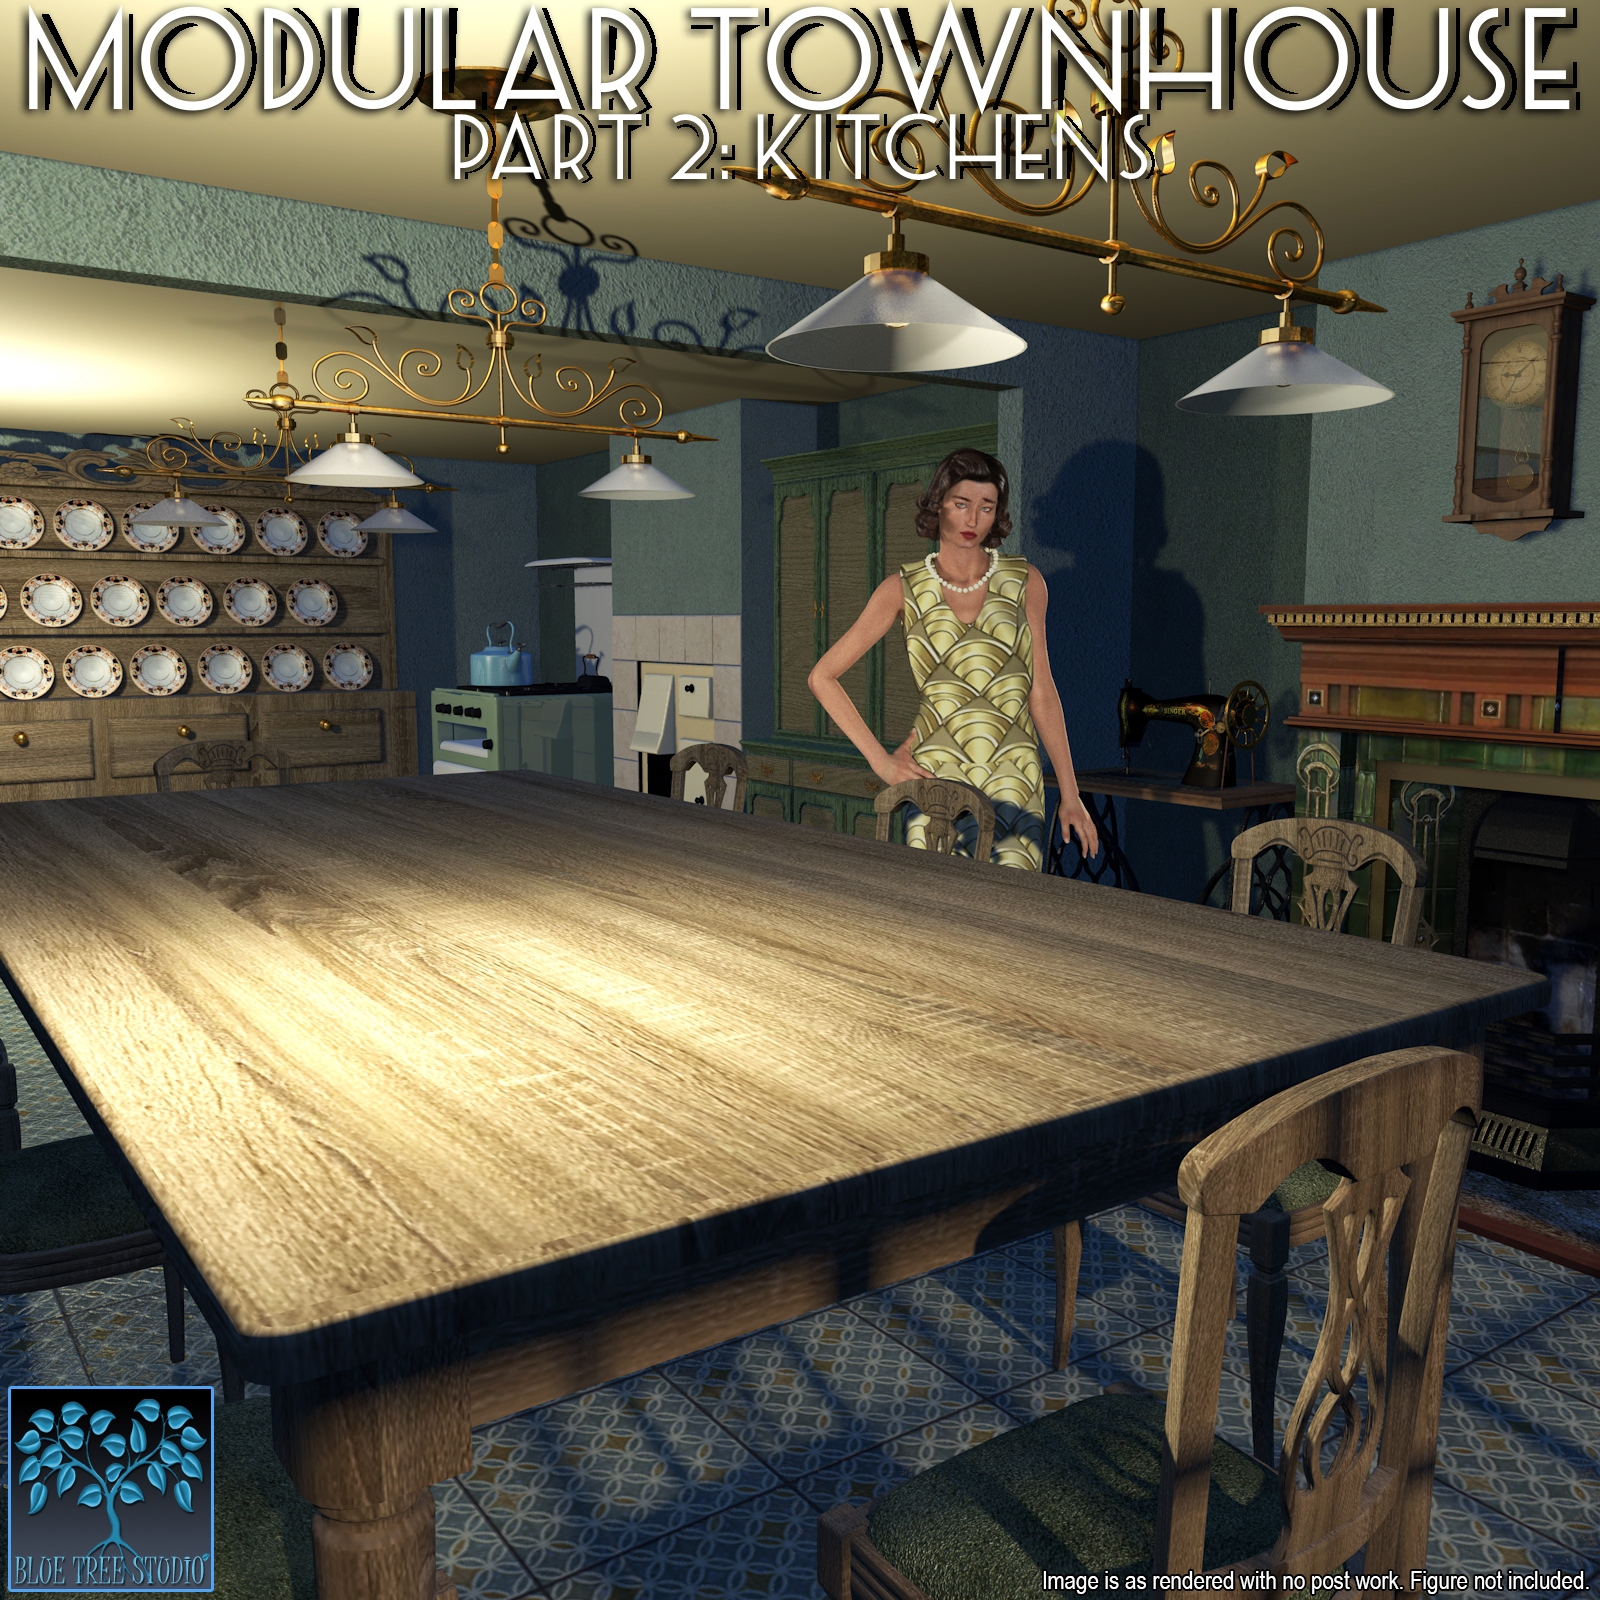 Modular Townhouse 2: Kitchens for Poser